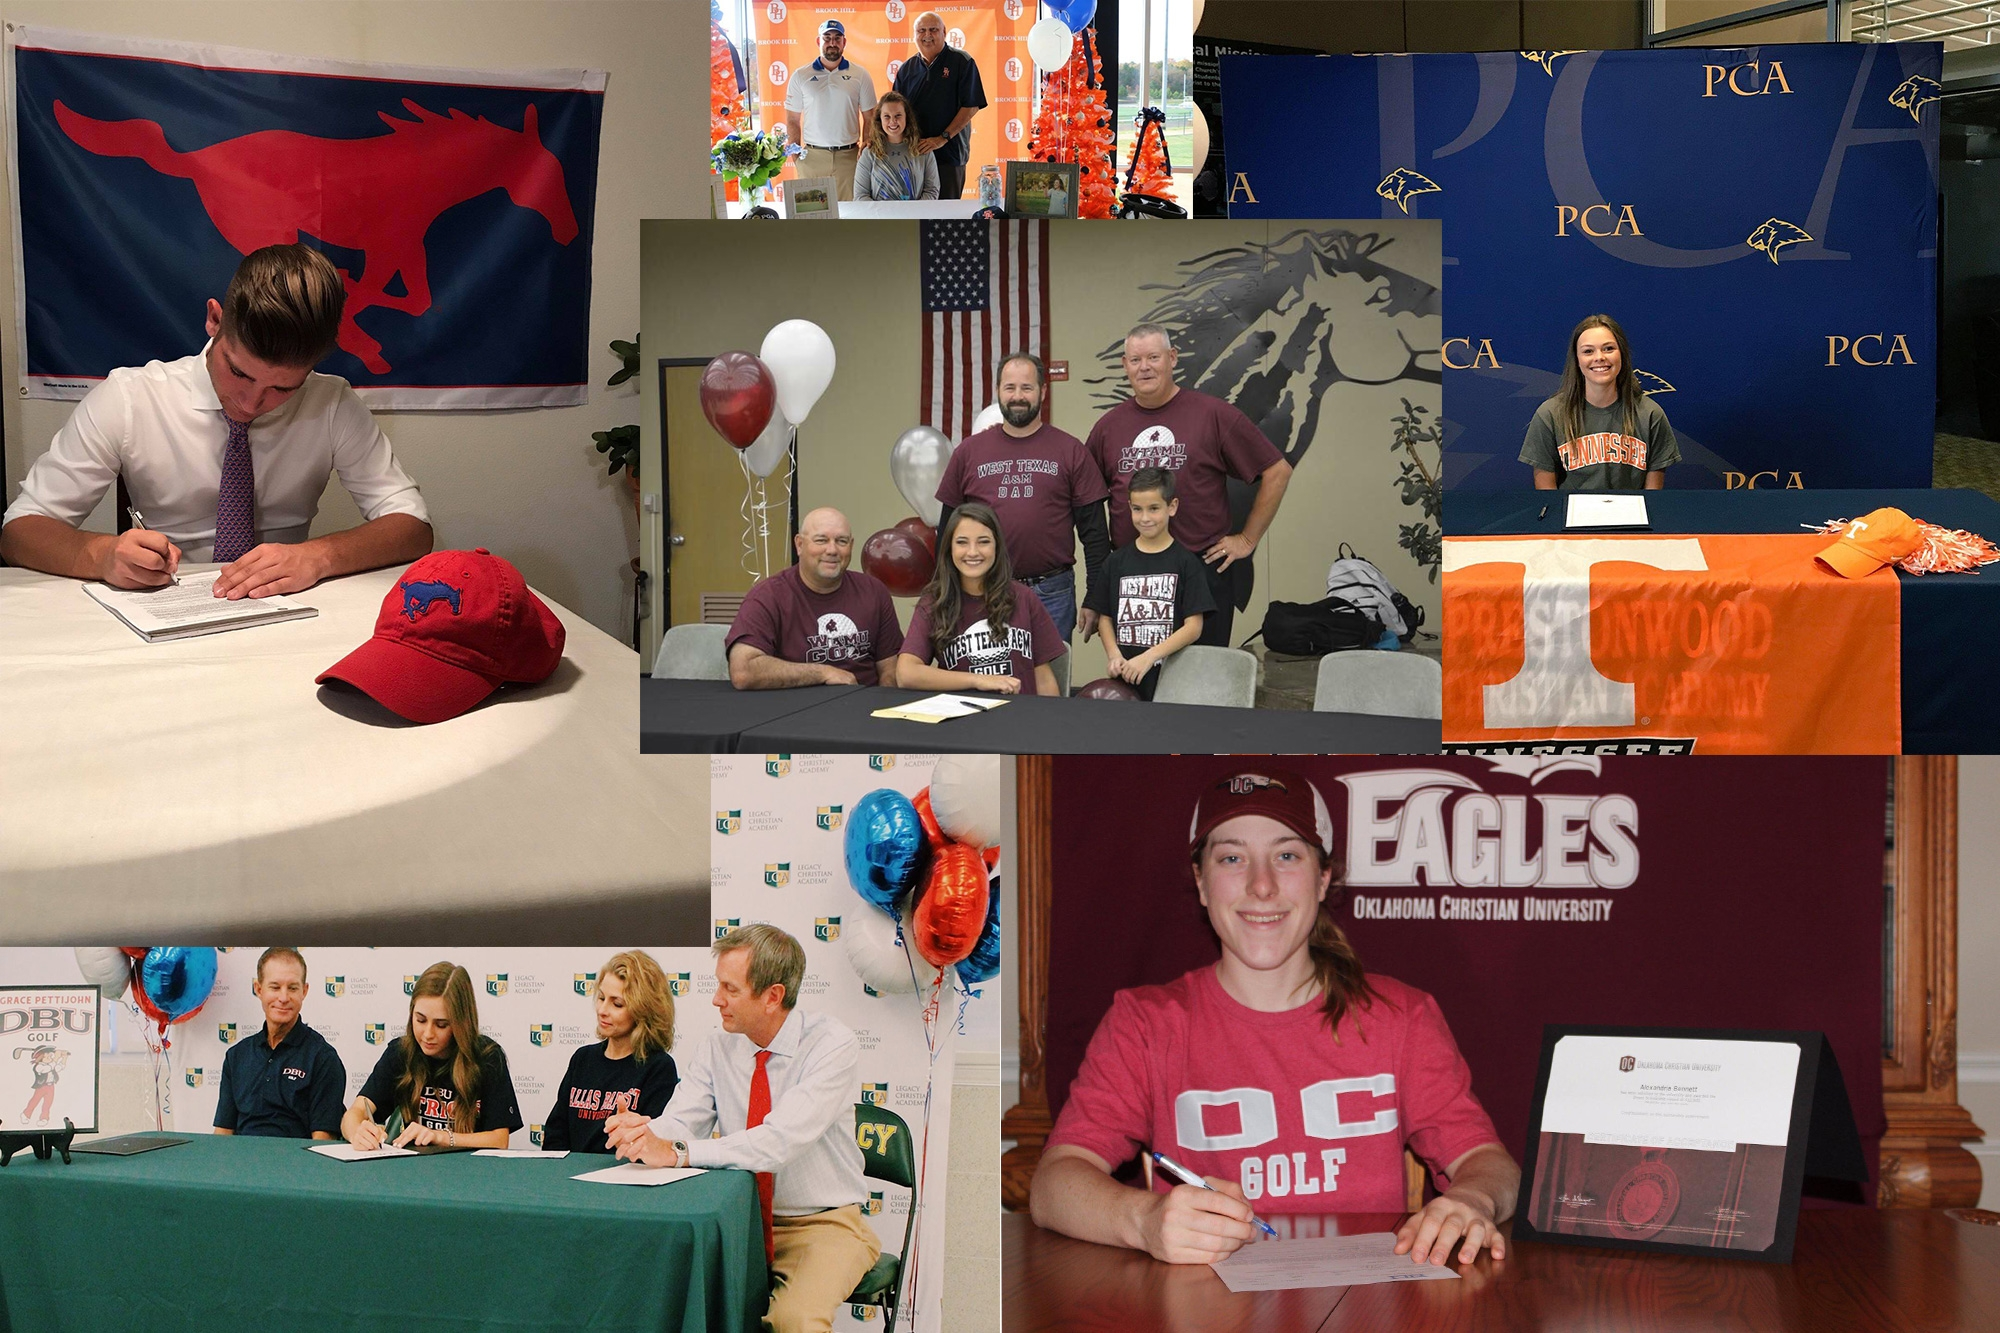 Congratulations class of 2018 on their college commitments!